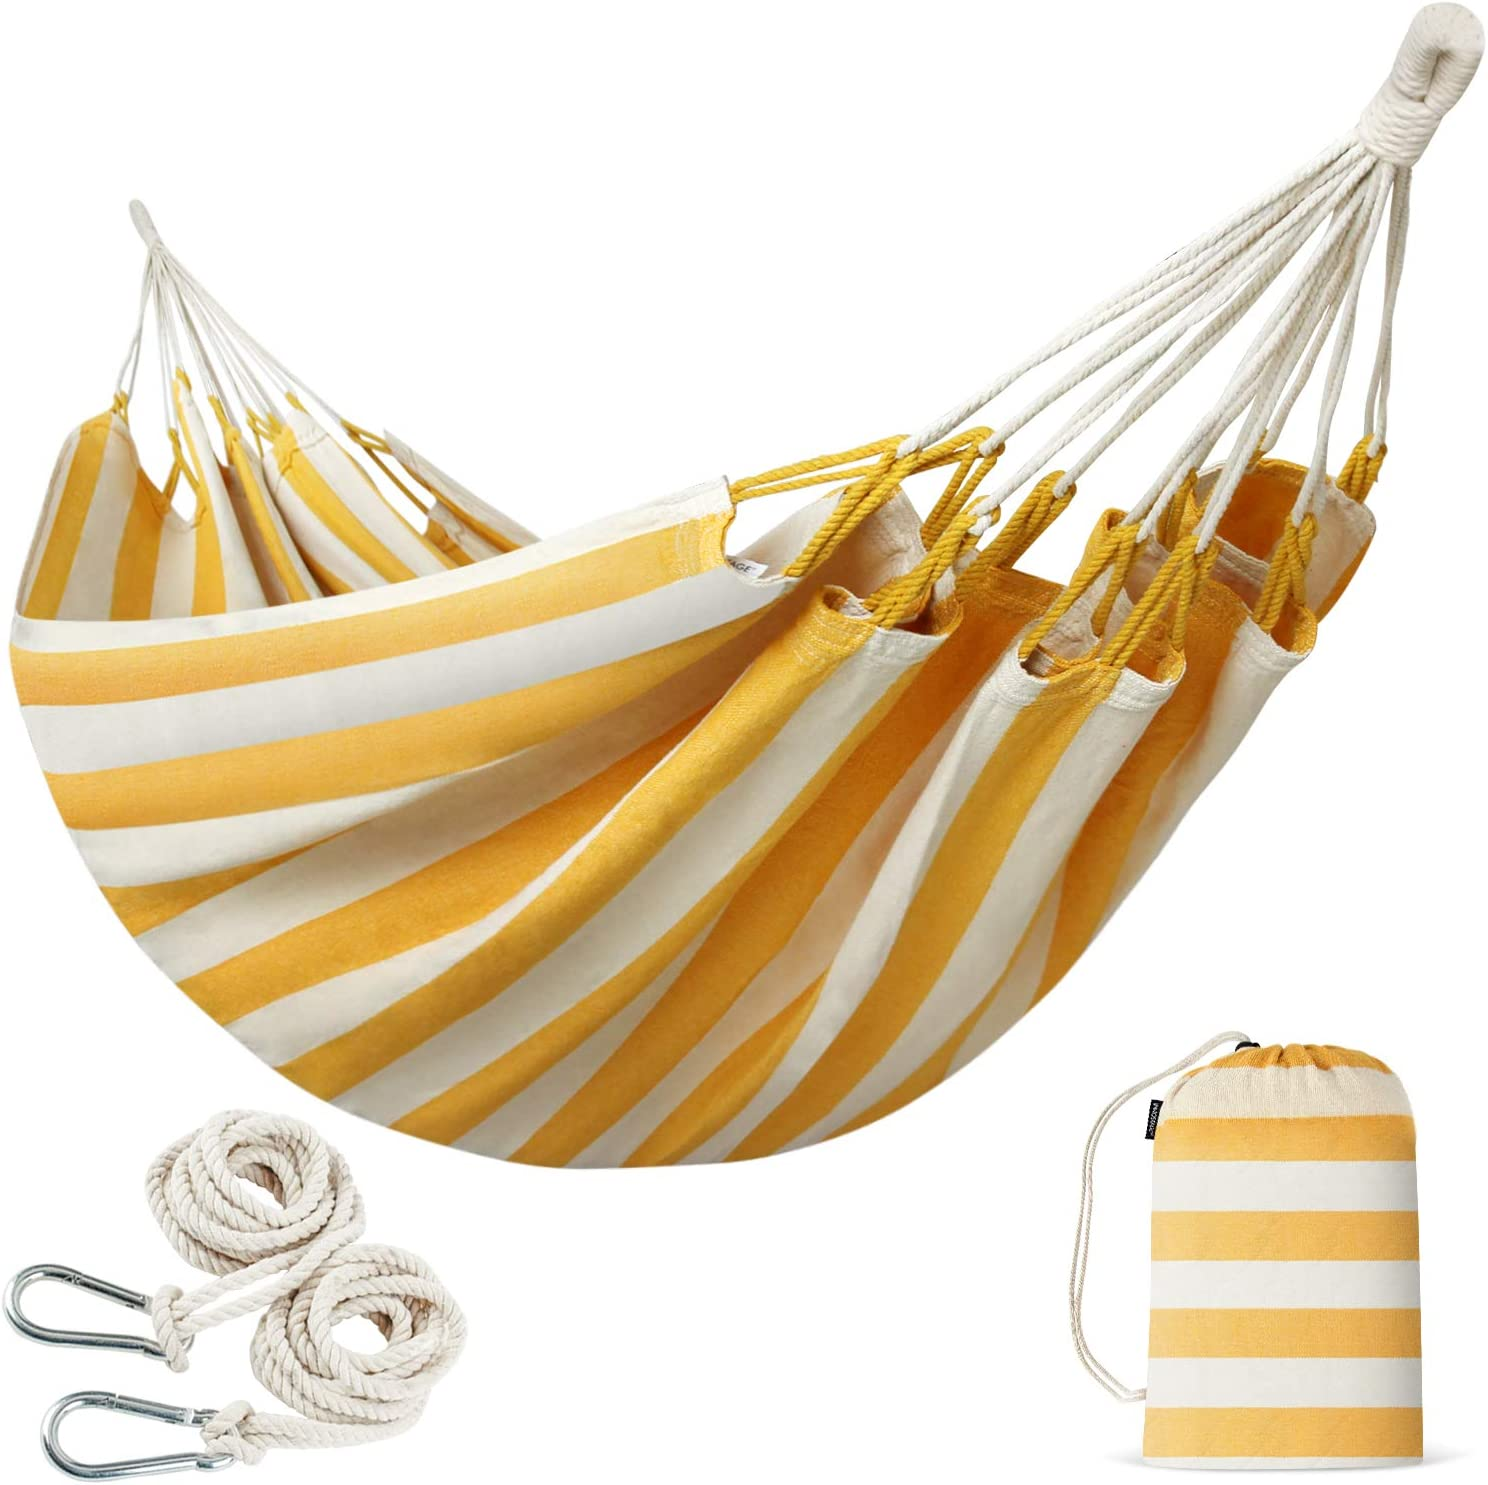 INNO STAGE Brazilian Double Hammocks - Woven Hammock Two Person Hanging Camping Bed for Patio, Backyard, Porch, Outdoor and Indoor Use - Soft Cotton Hammock with Portable Carrying Bag